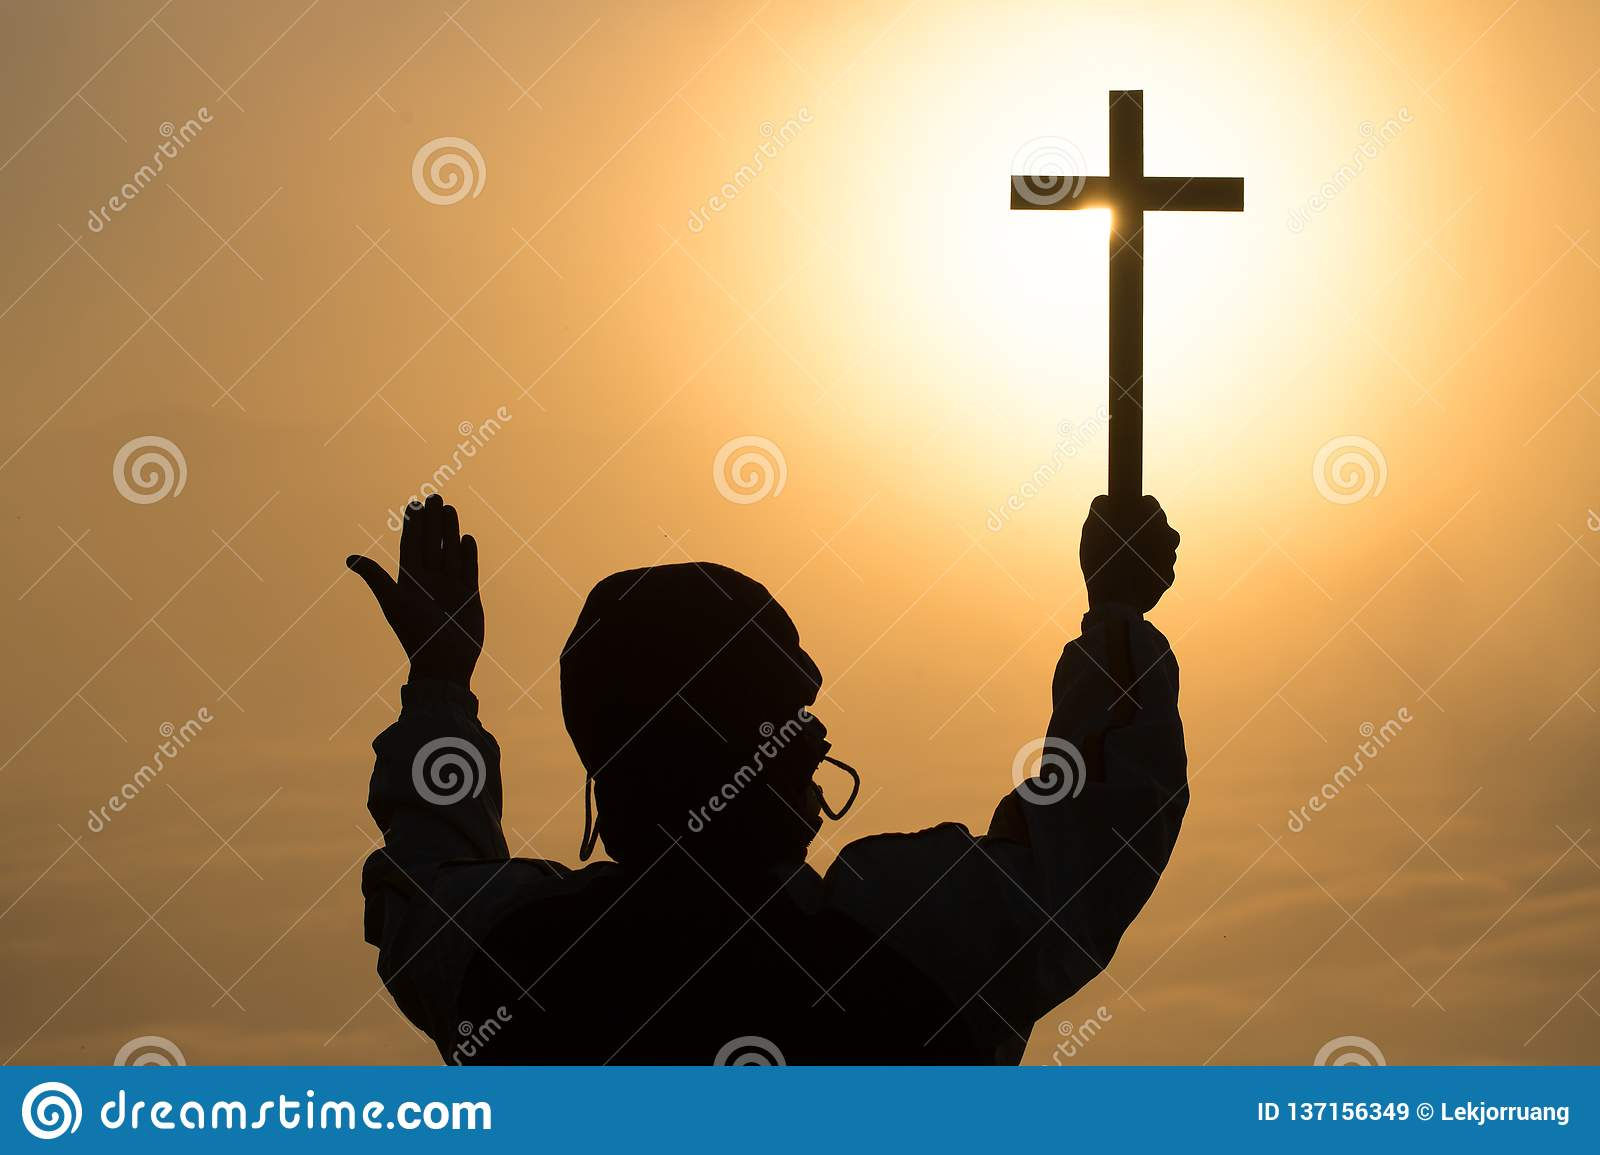 Silhouette of young human hands praying with a cross at sunrise, Christian Religion concept background